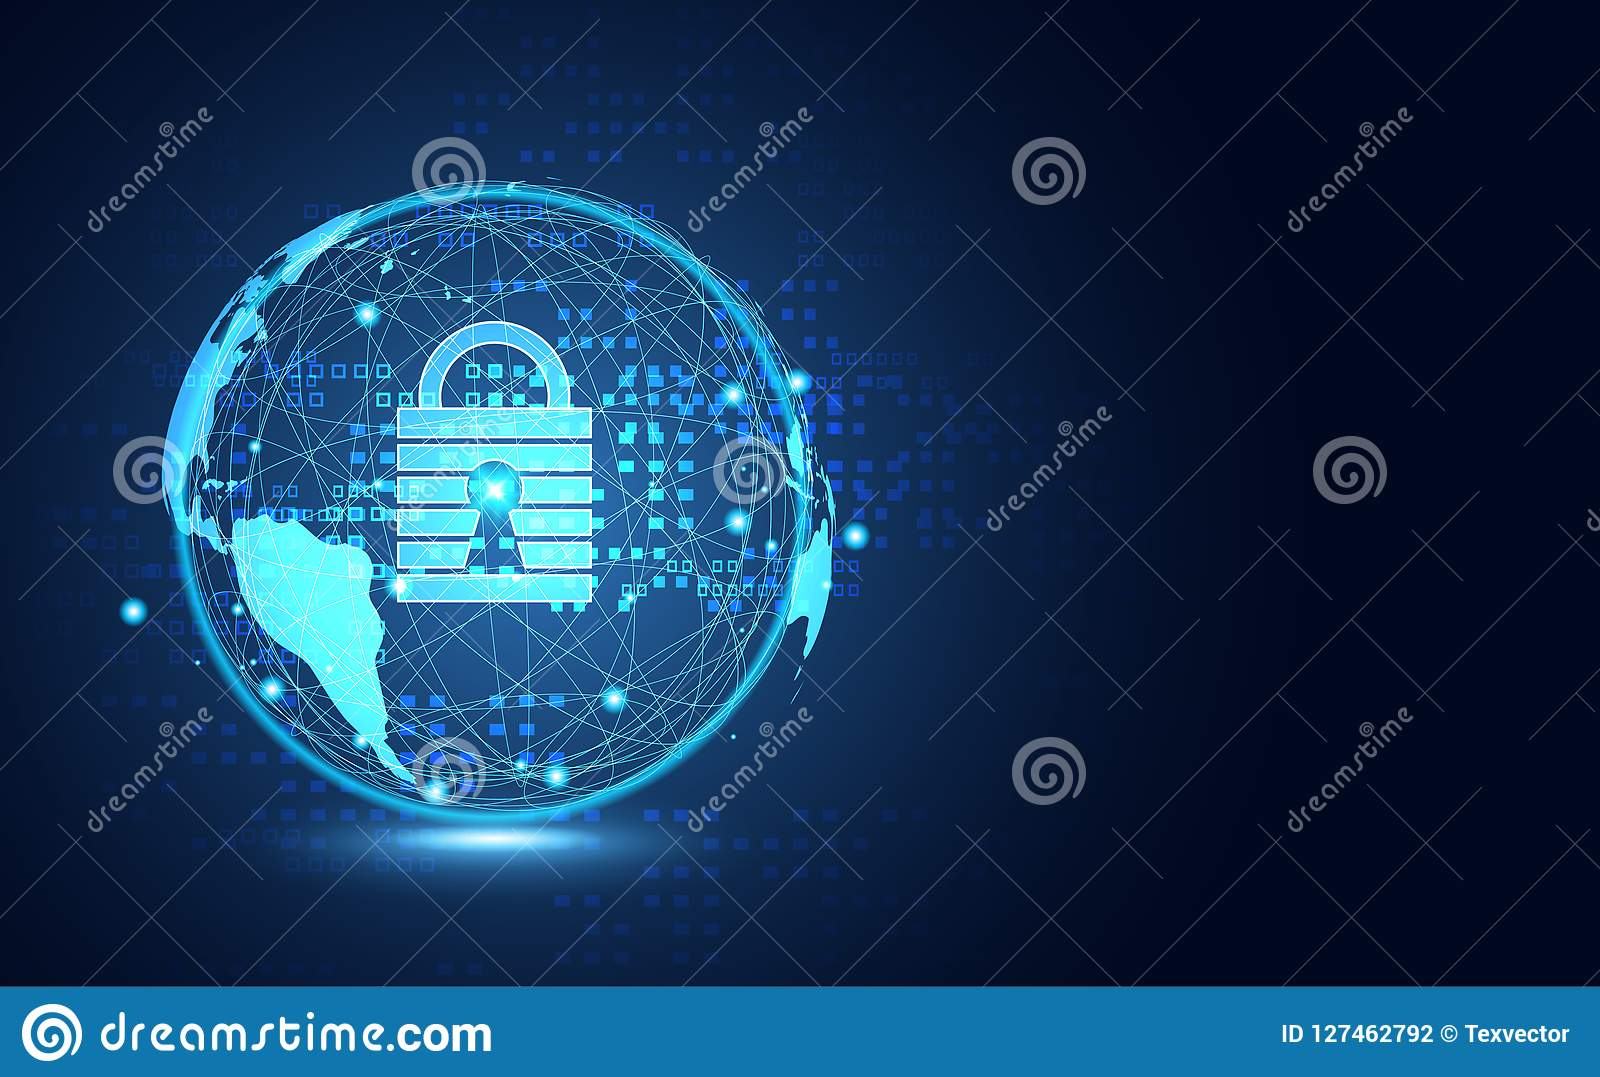 Abstract technology world cyber security privacy information net